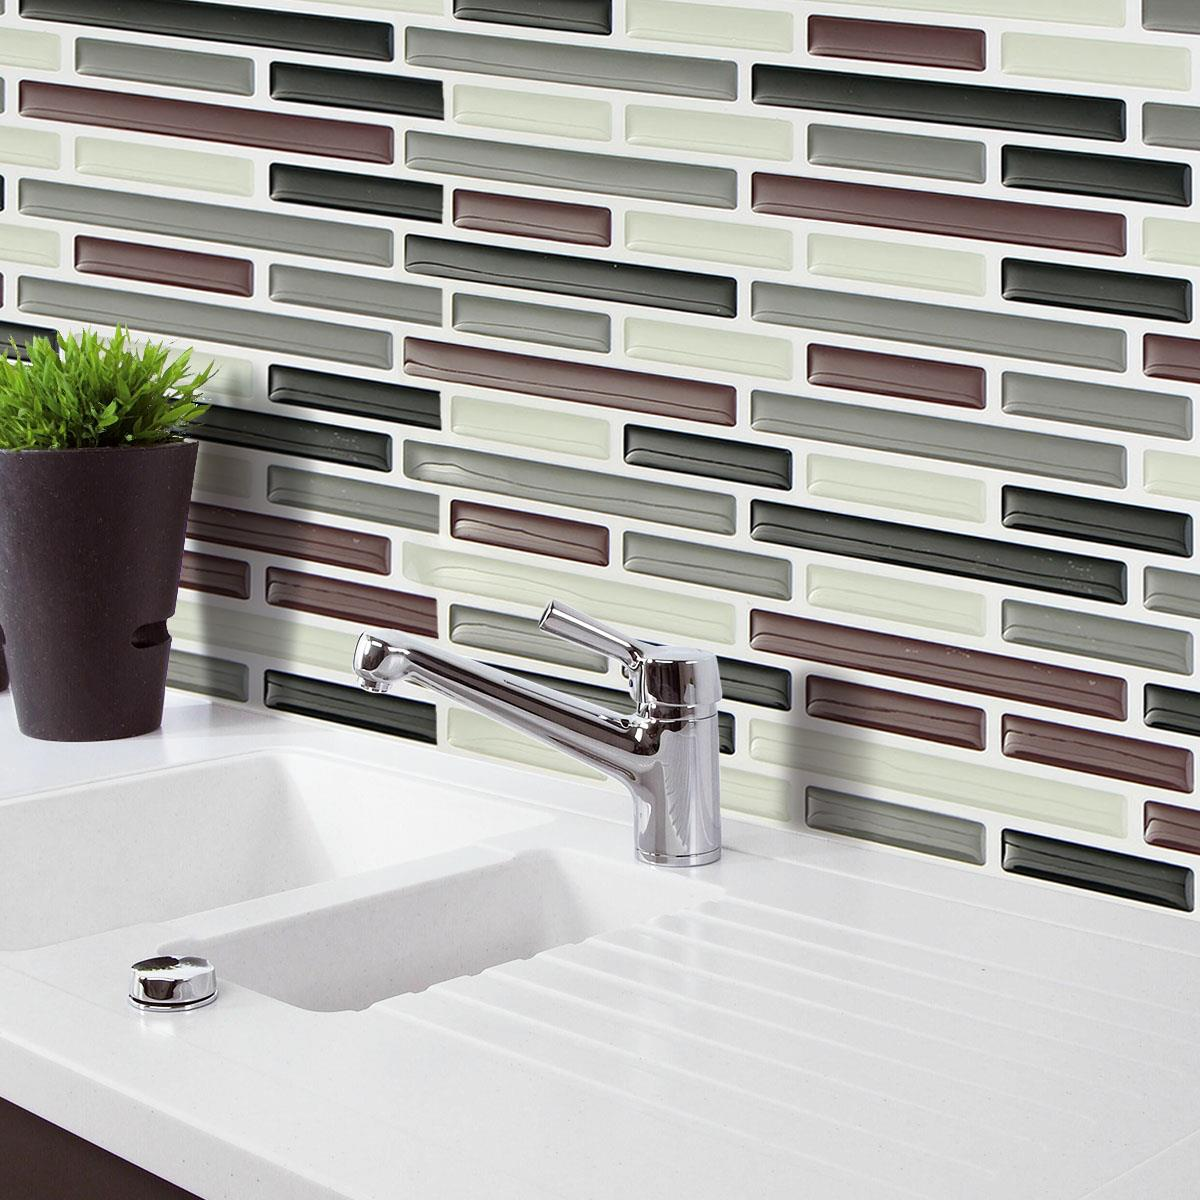 PVC Wall Sticker Bathroom Waterproof Self adhesive Wallpaper Kitchen Mosaic Tile Stickers For Wall Decal Home Decoration(China (Mainland))